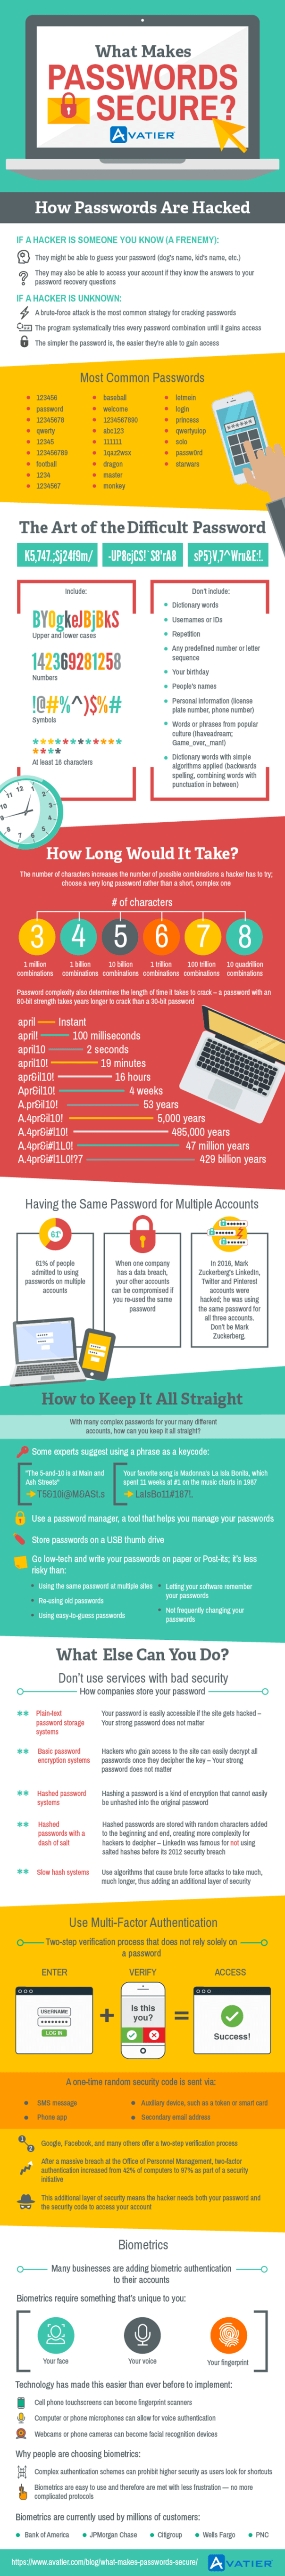 Is Your Company Vulnerable to a Hacker's Attack? [Infographic]